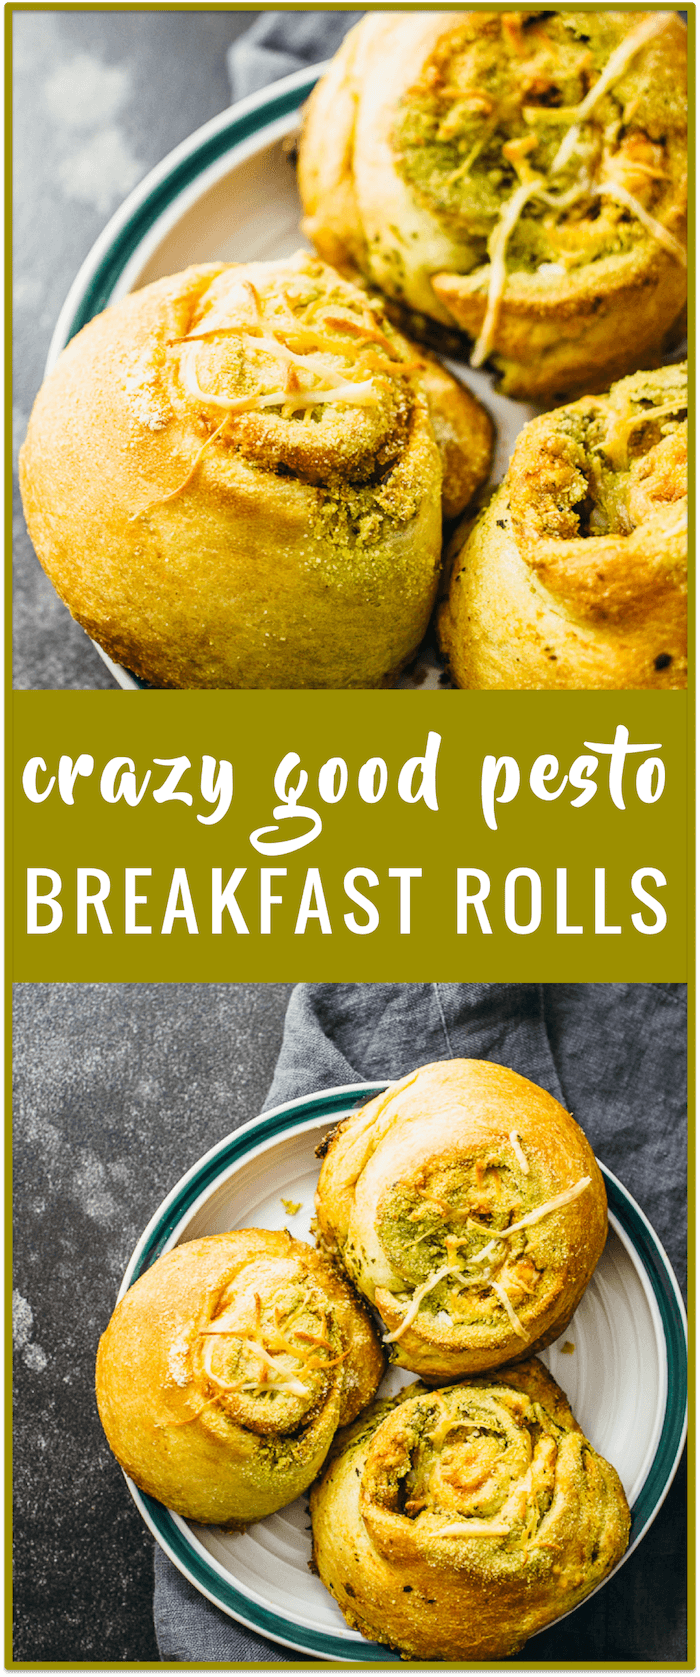 Pesto breakfast rolls recipe - These pesto breakfast rolls are made using crescent roll dough, and are stuffed with pesto sauce, tomato sauce, cheddar cheese, and oregano.